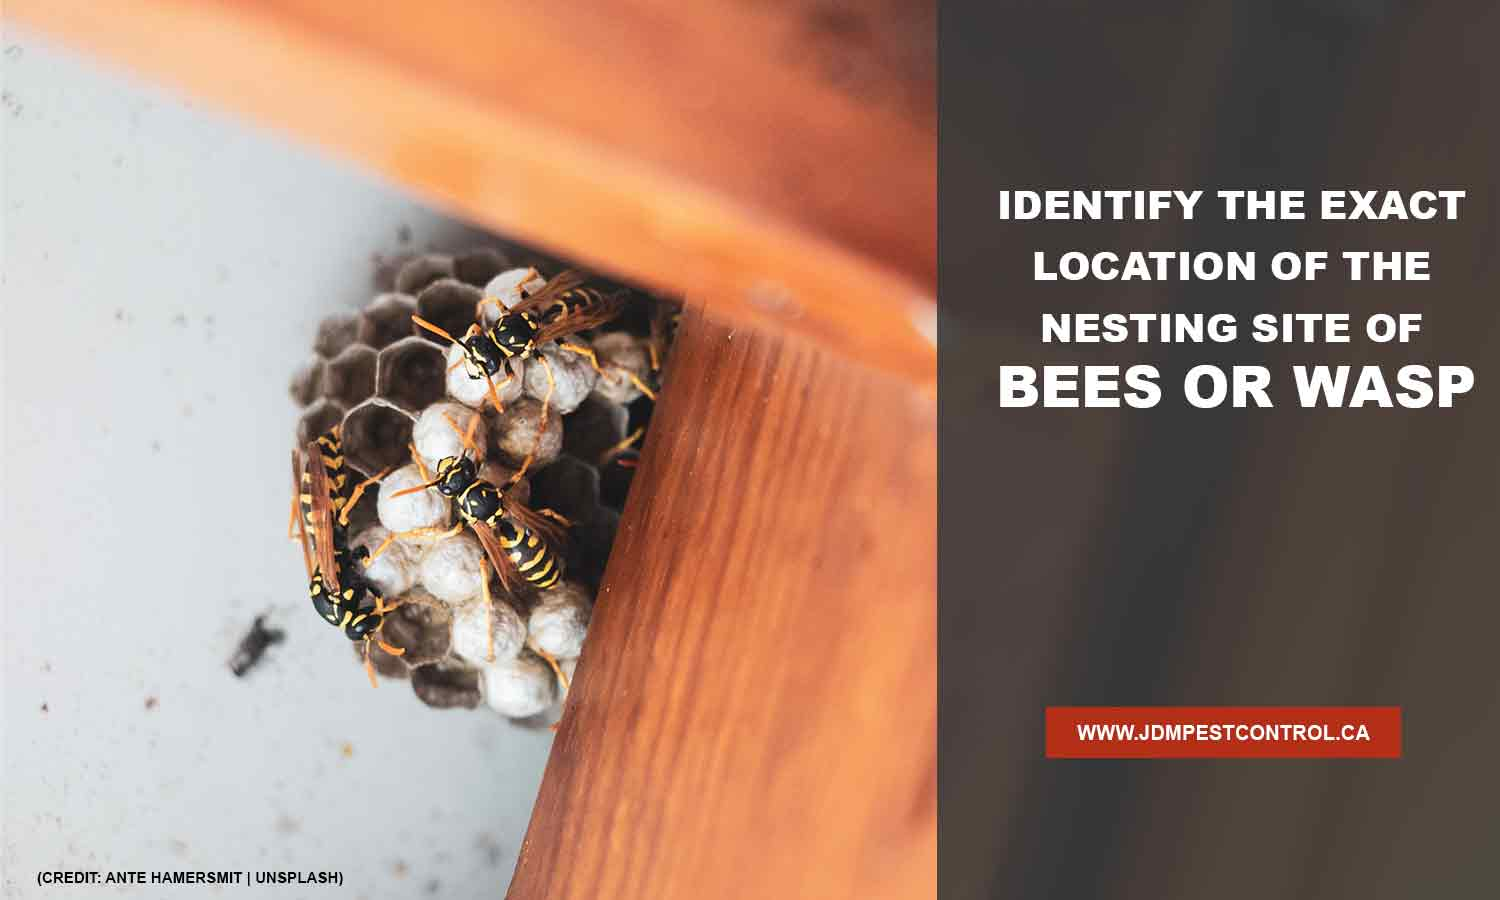 Identify the exact location of the nesting site of bees or wasps